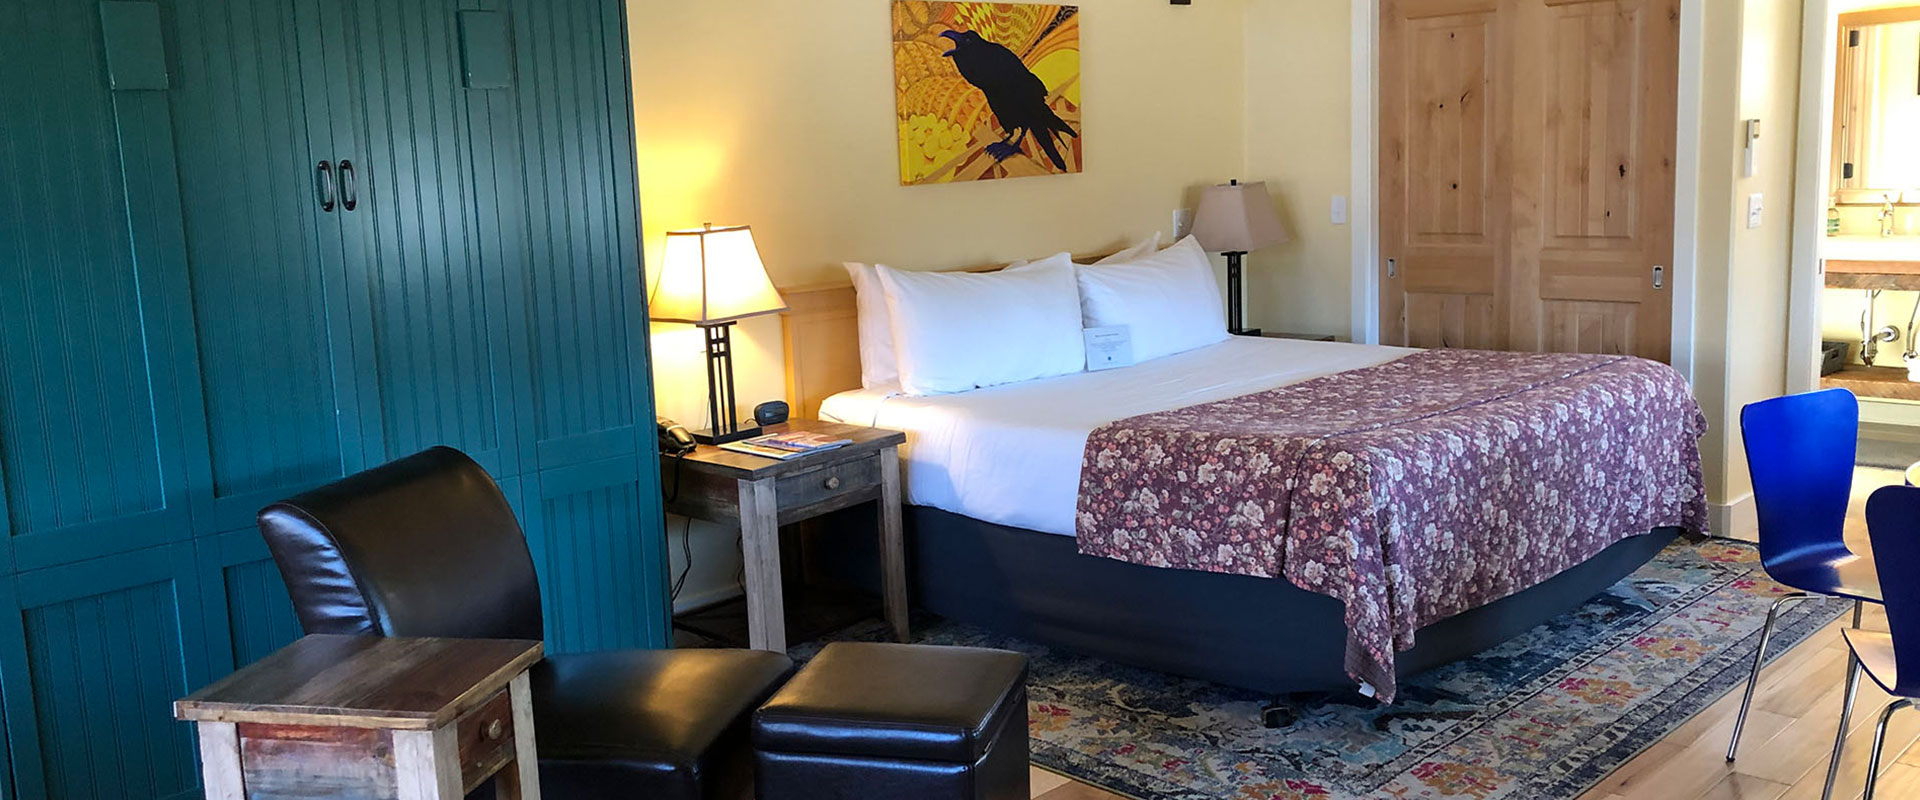 The patio view from Unit #21 at Moab Springs Ranch overlooks triangular rooftops of neighboring townhouse units, green and plum color tree leaves and the black shadow of sandstone cliffs.